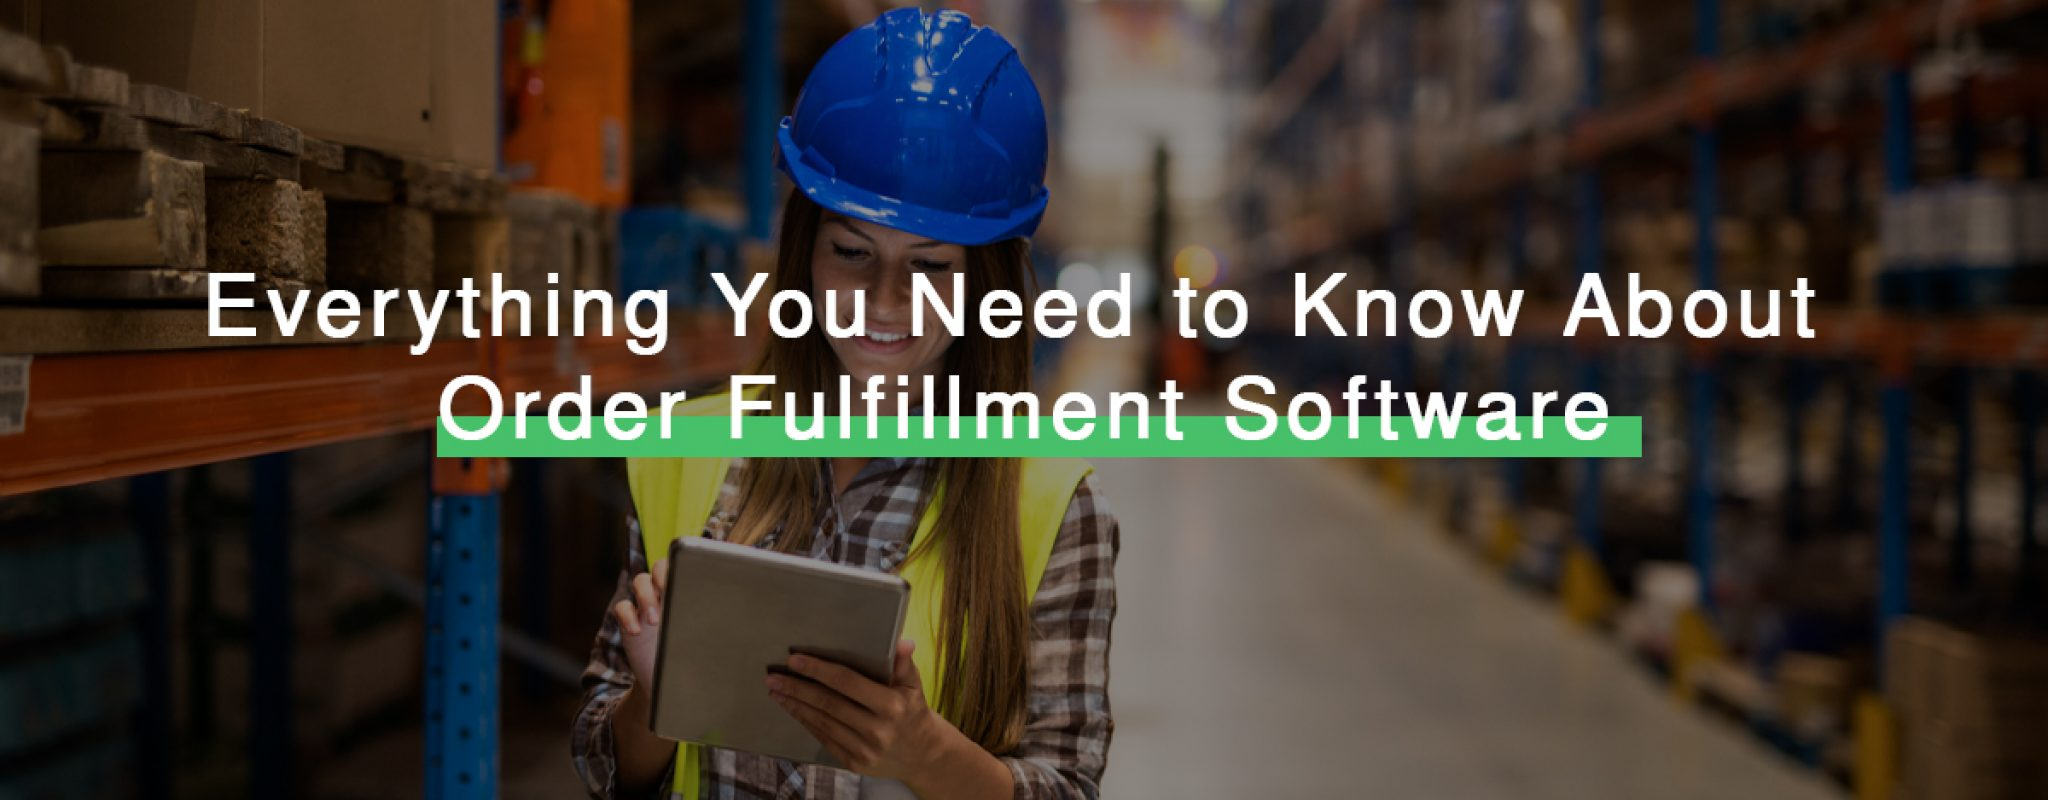 Everything You Need to Know About Order Fulfillment Software